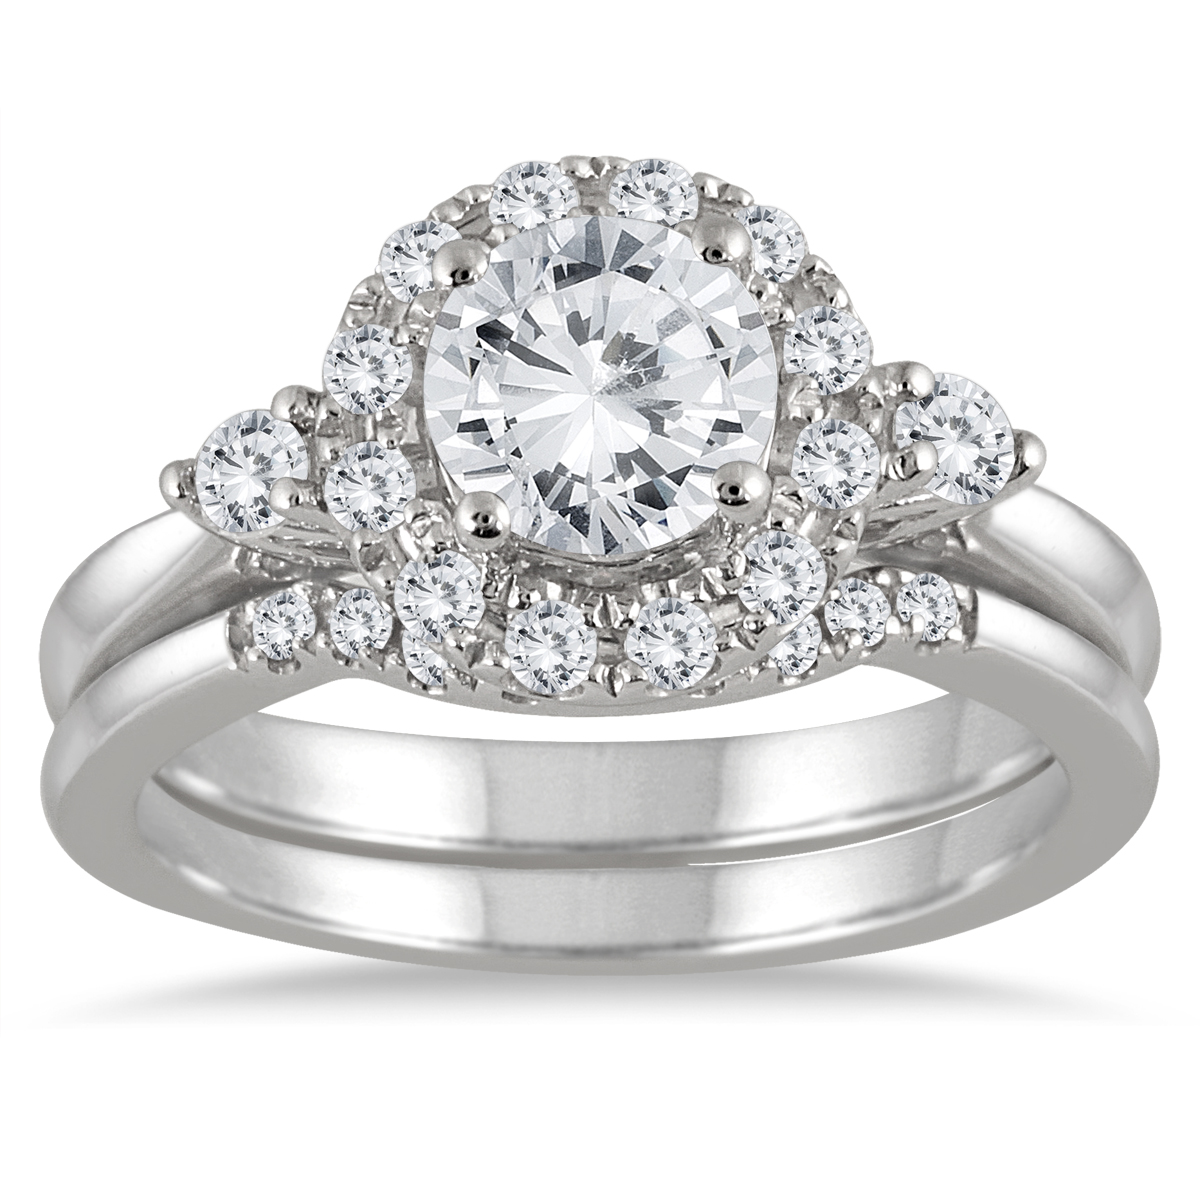 AGS Certified 1 1/2 Carat TW Halo Diamond Halo Bridal Set in 14K White Gold (J-K Color, I2-I3 Clarity)